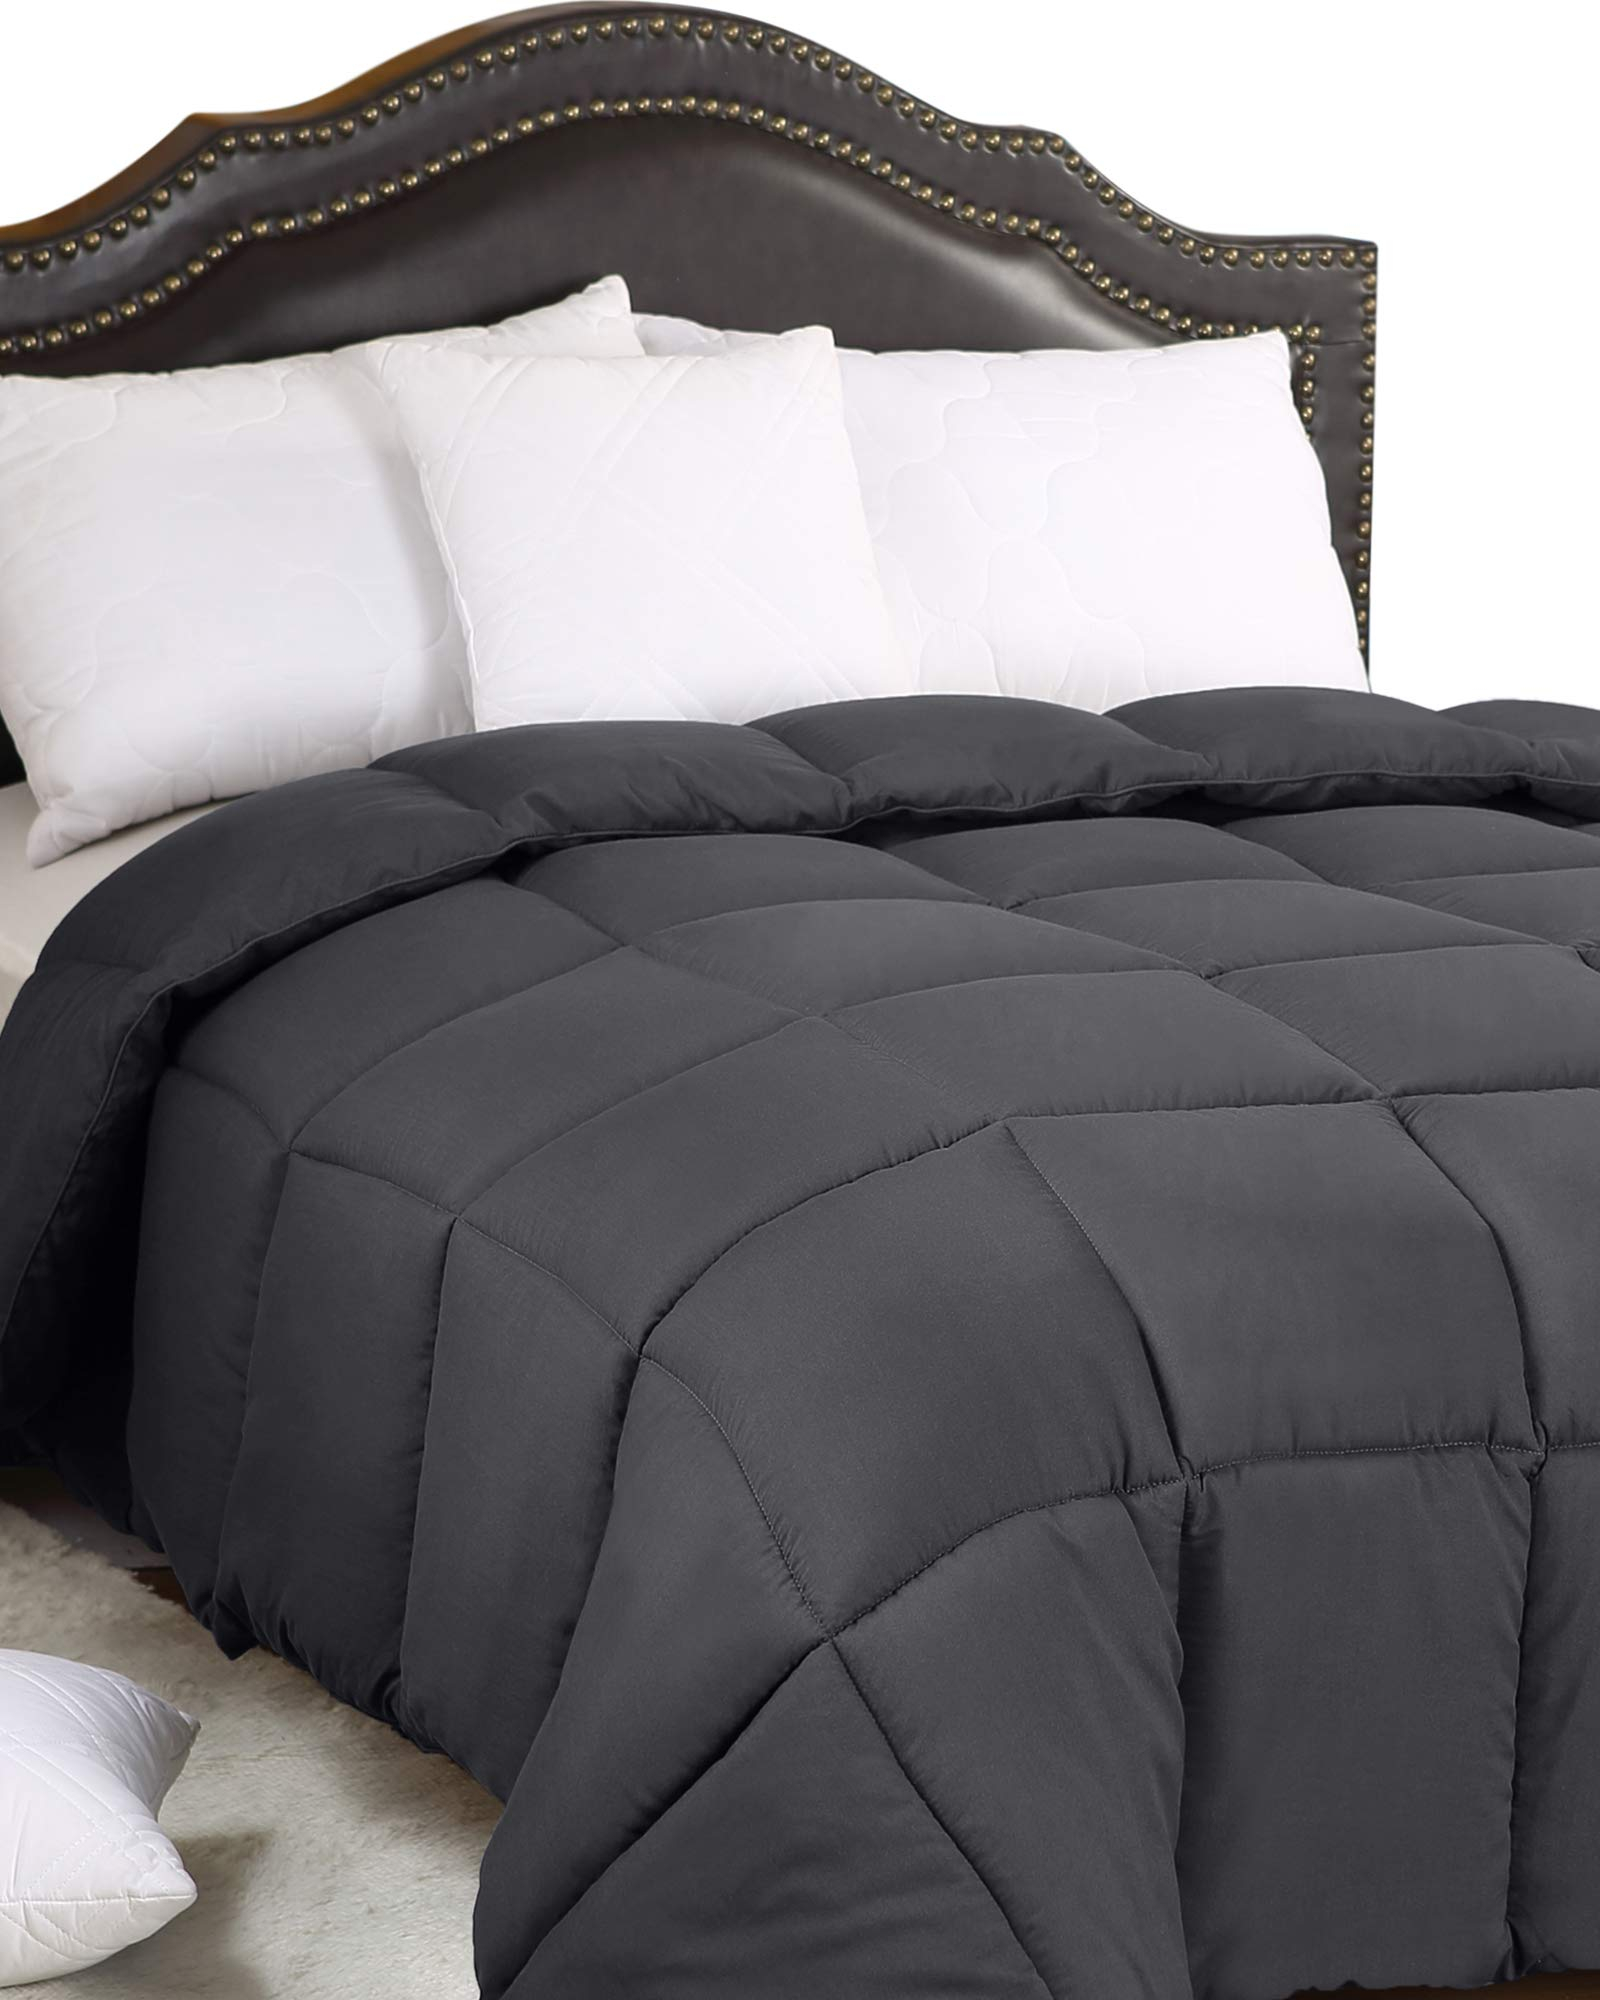 Utopia Bedding All Season 250 GSM Comforter - Soft Down Alternative Comforter - Plush Siliconized Fiberfill Duvet Insert - Box Stitched (Full/Queen, Grey) by Utopia Bedding (Image #1)